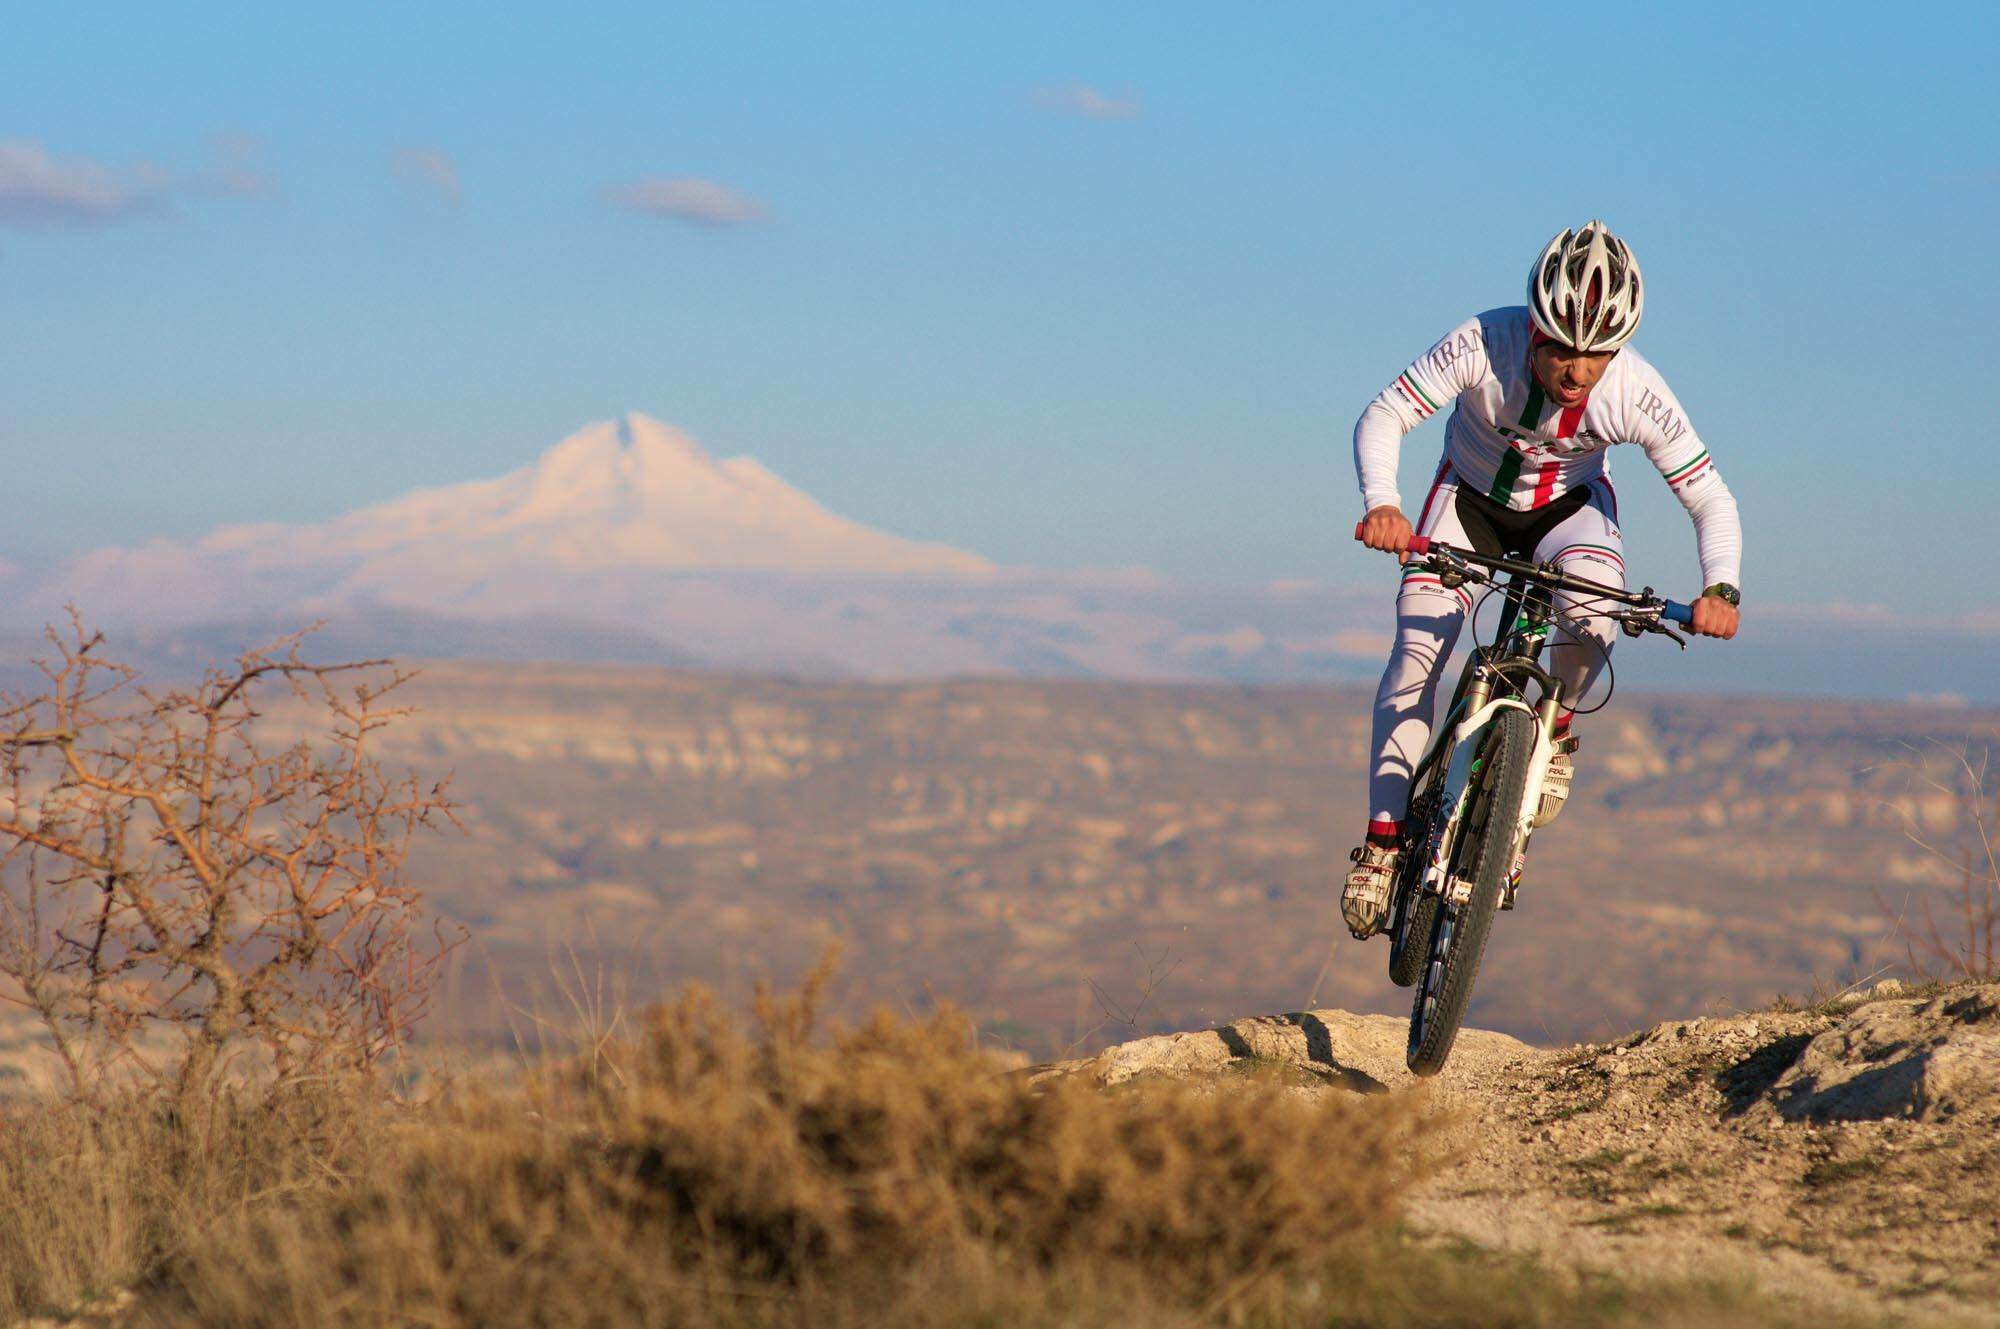 Sina racing in Turkey, Erciyes Peak in the background. Copyright Seb Rogers -https://www.cranked.cc/